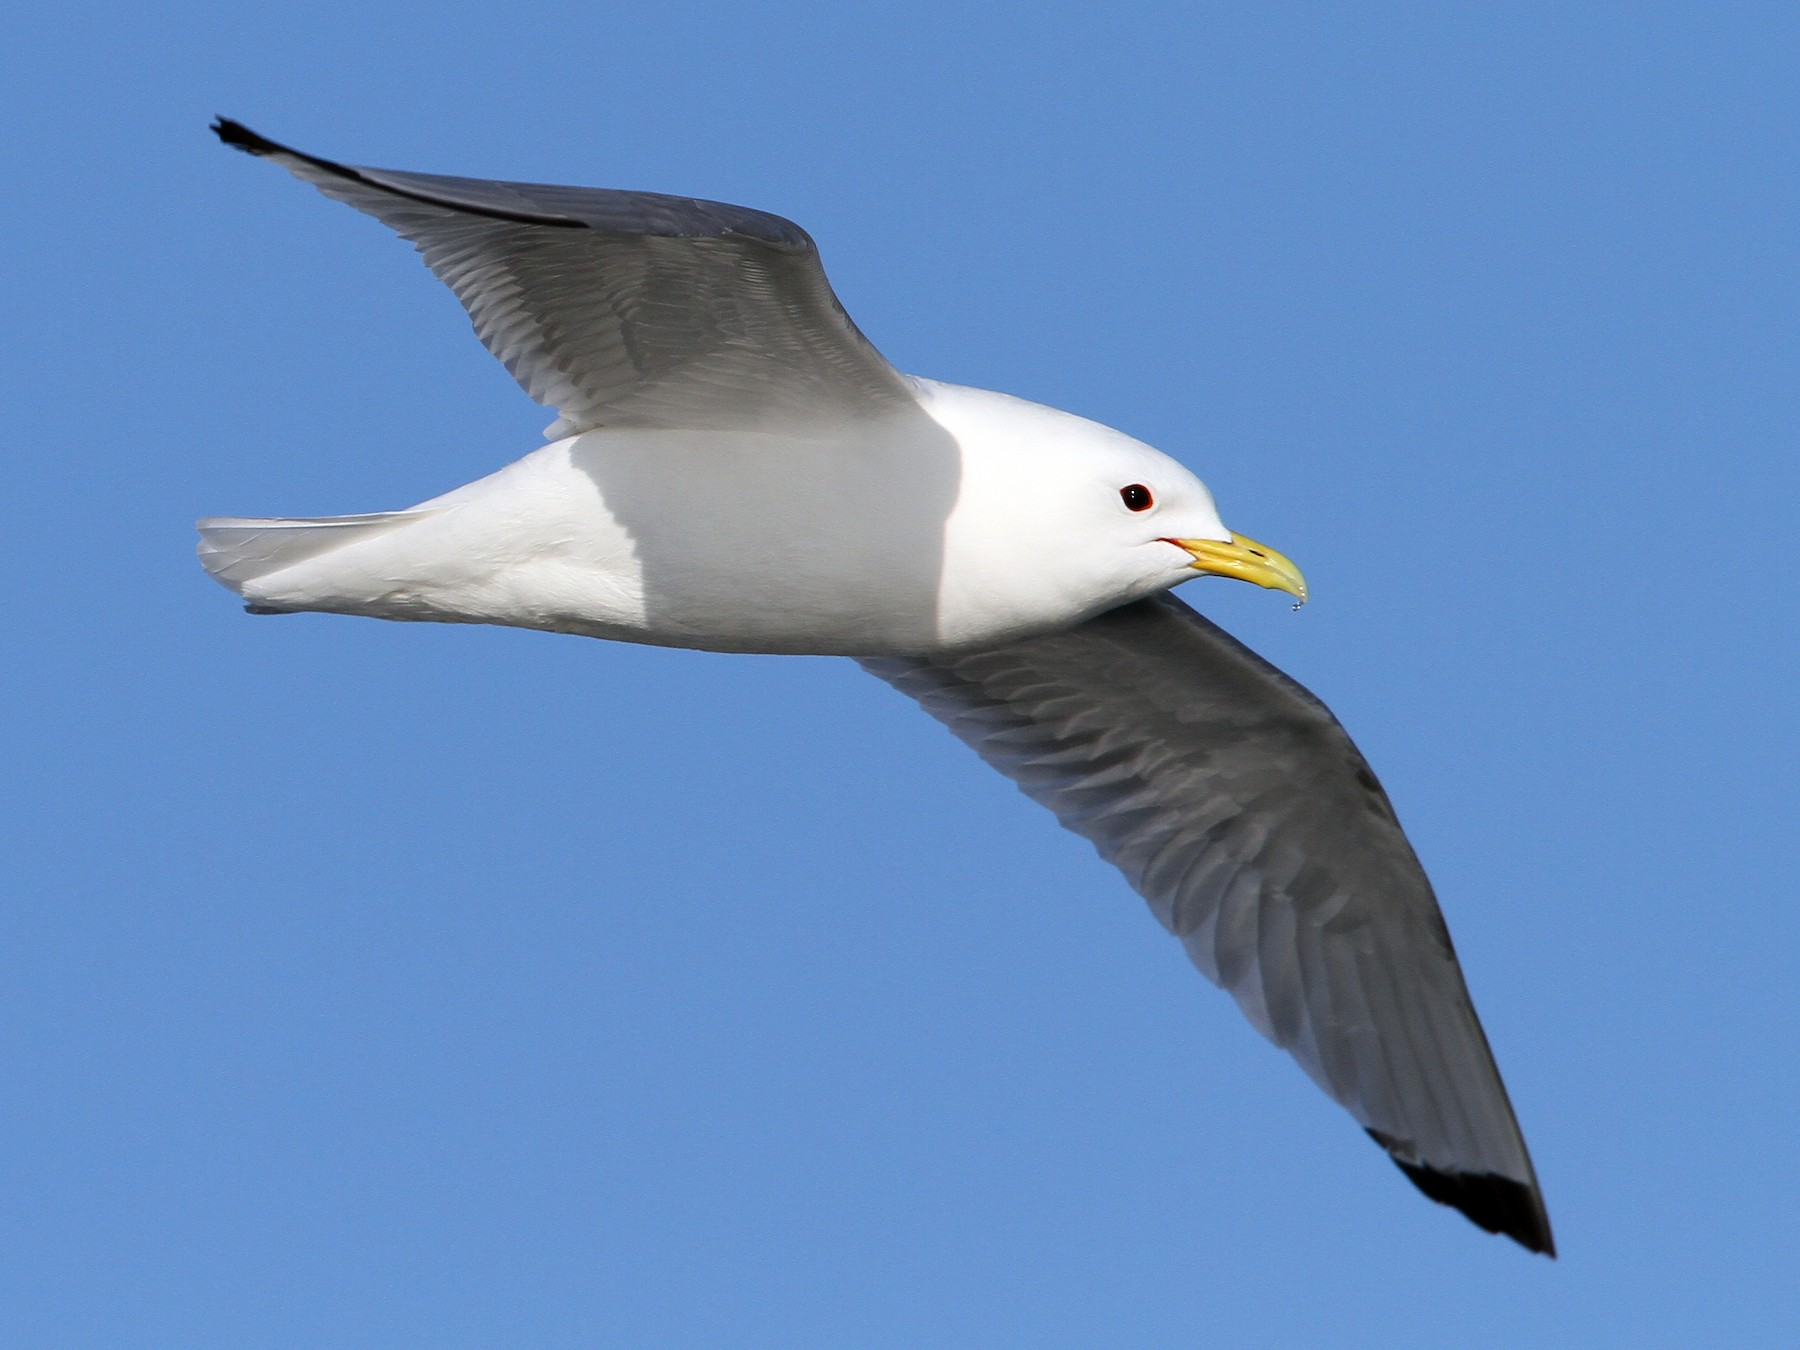 Black-legged Kittiwake - Christoph Moning